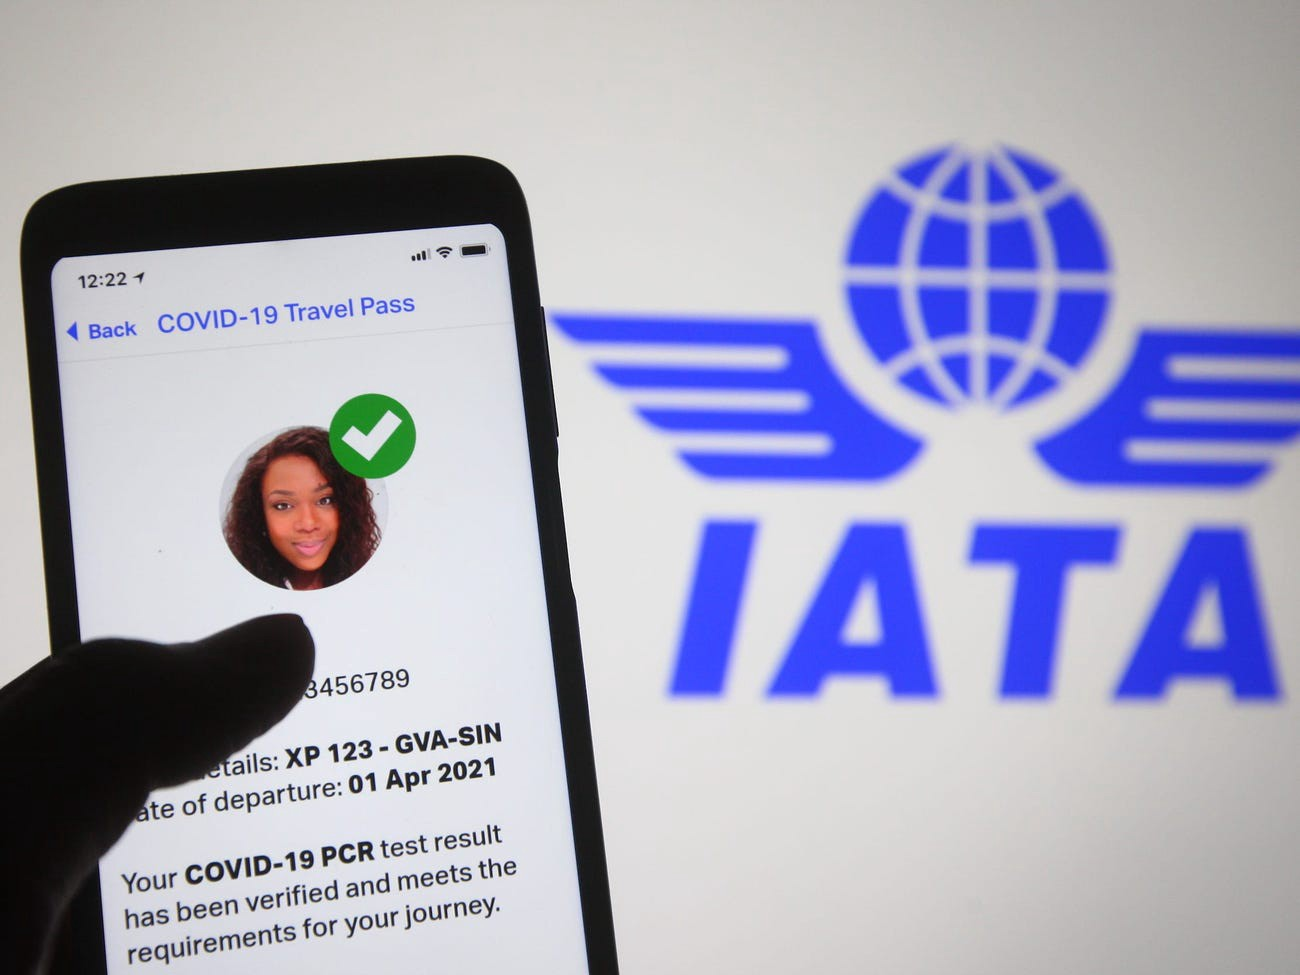 """The IATA Travel Pass app is a new digital """"COVID-19 vaccine passport"""" that lets travelers store their verified certifications for COVID-19 tests or COVID-19 proof of vaccination."""